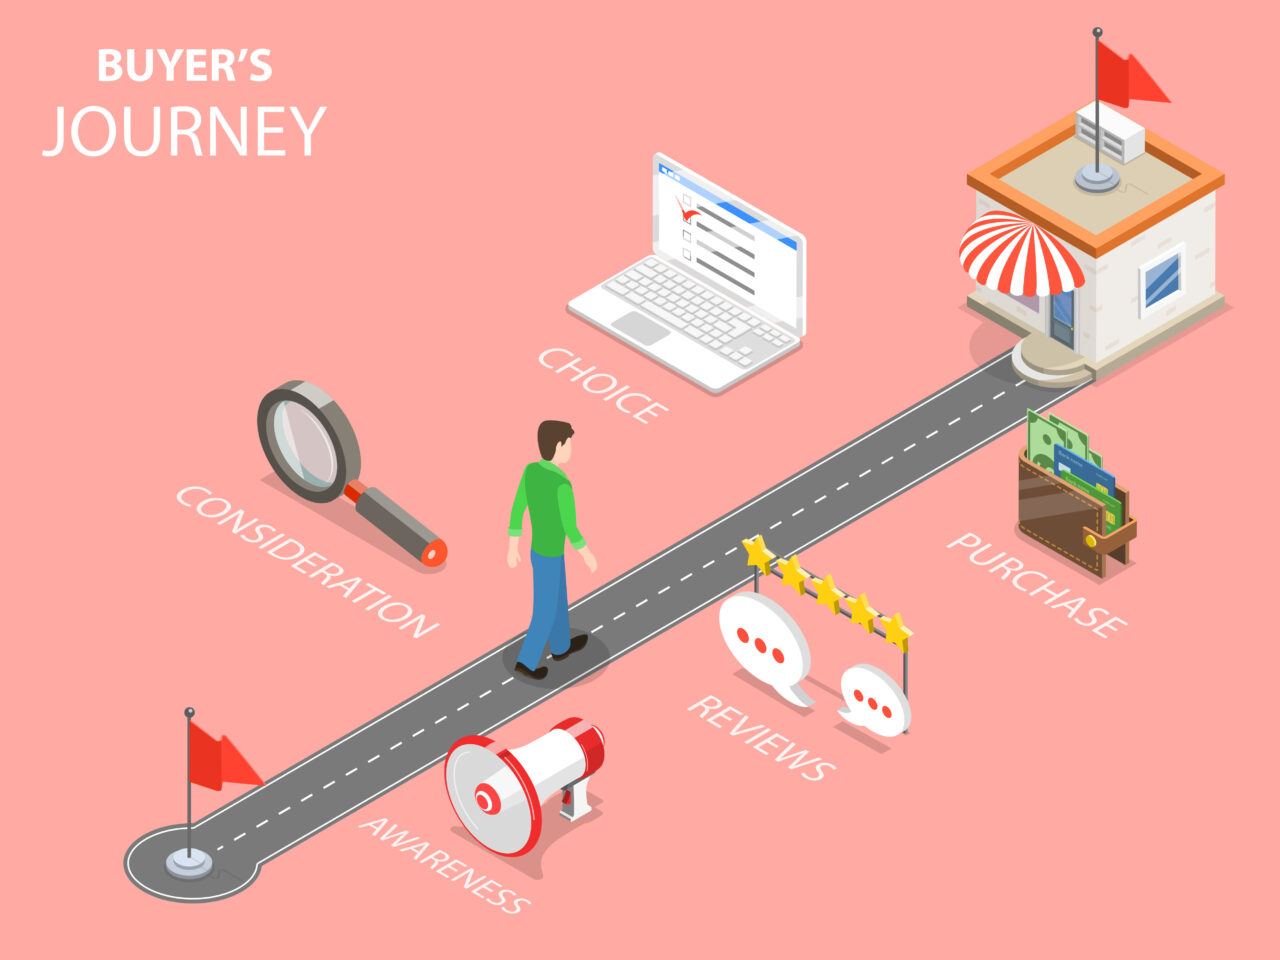 An illustration shows a buyer walking through the shopping process.